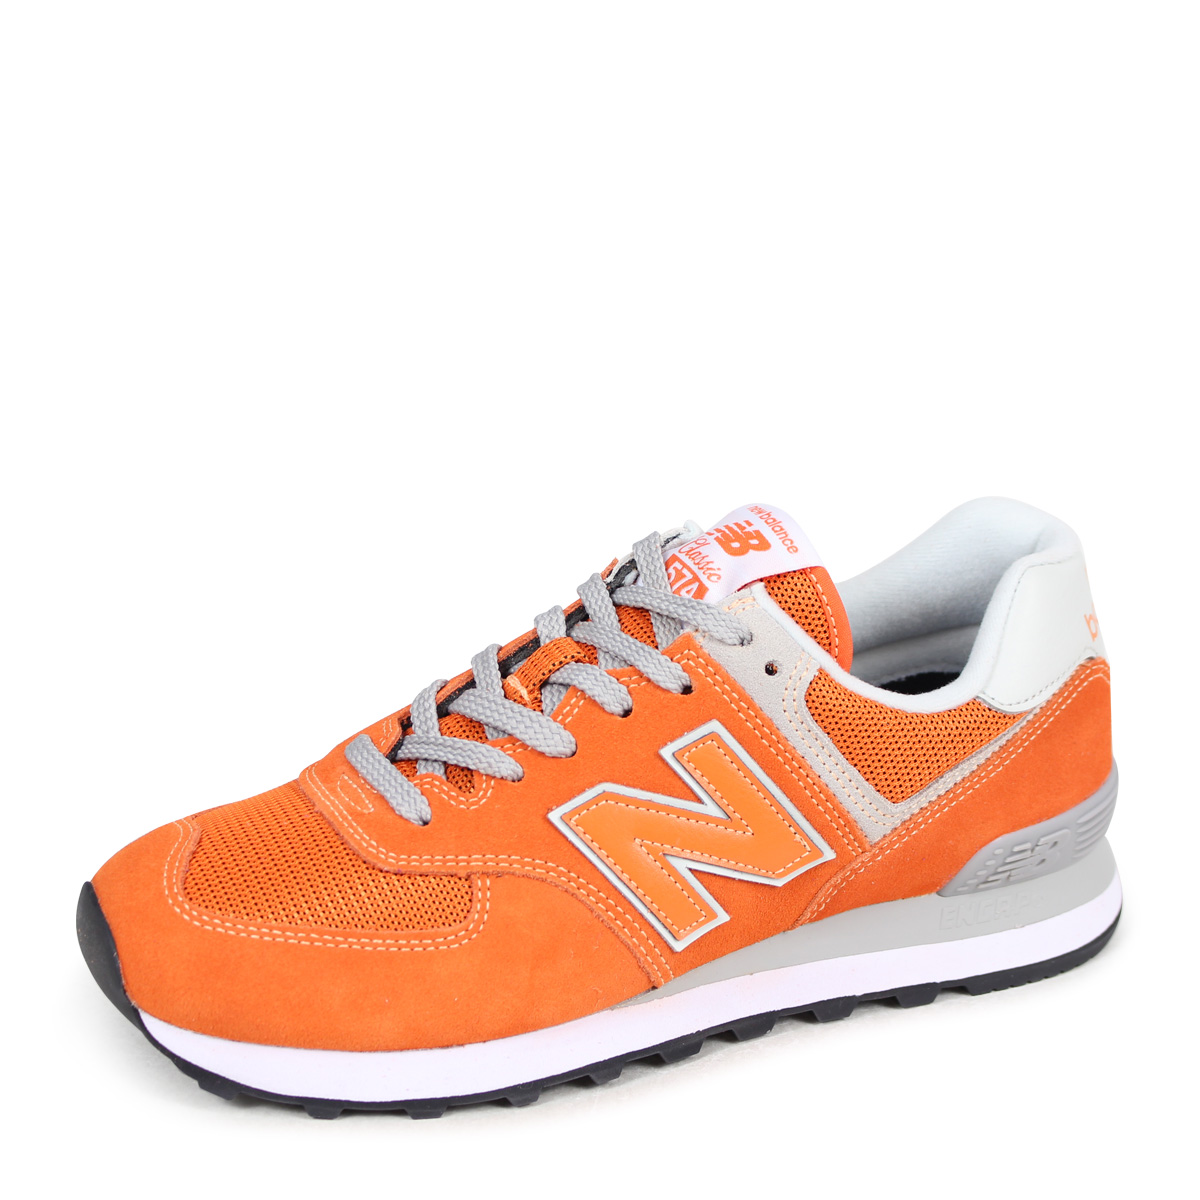 low priced 8c682 19d1d  NEW BALANCE which wears it, and has a good reputation for a feeling, and  is loved for many years by sneakers freak